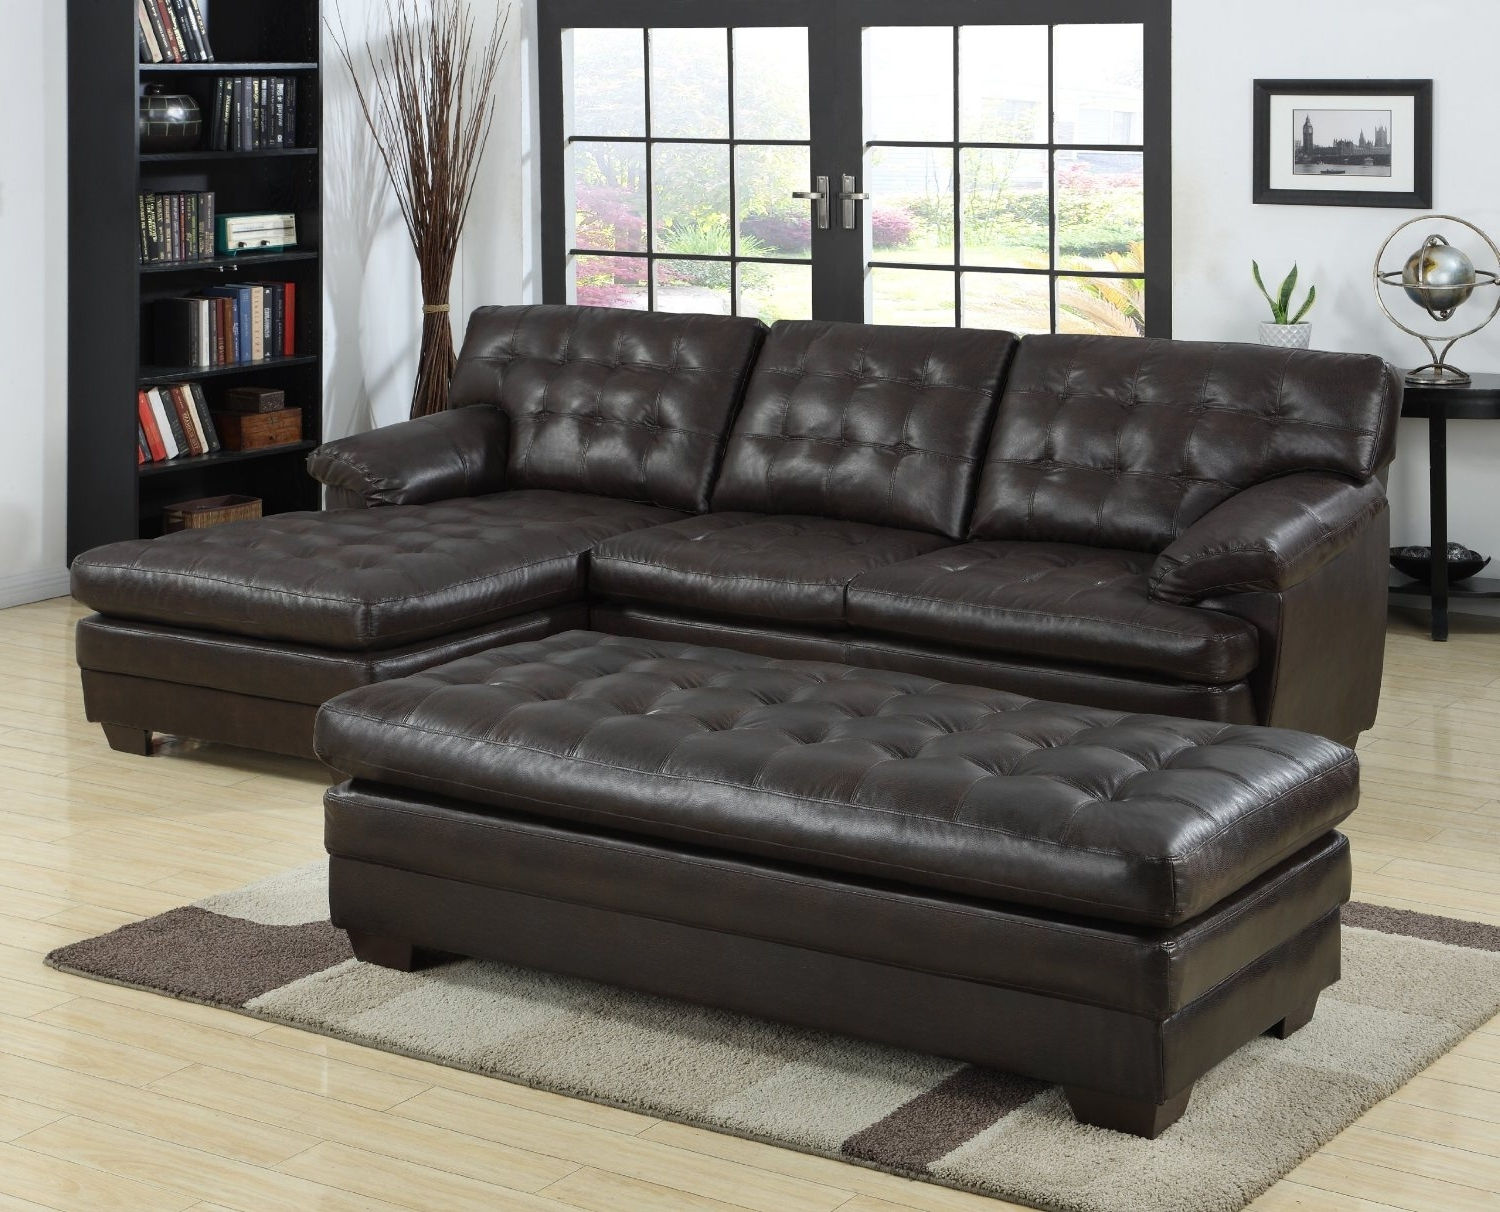 Well Known Black Tufted Leather Sectional Sofa With Chaise And Bench Seat Regarding Leather Chaise Sofas (View 12 of 15)